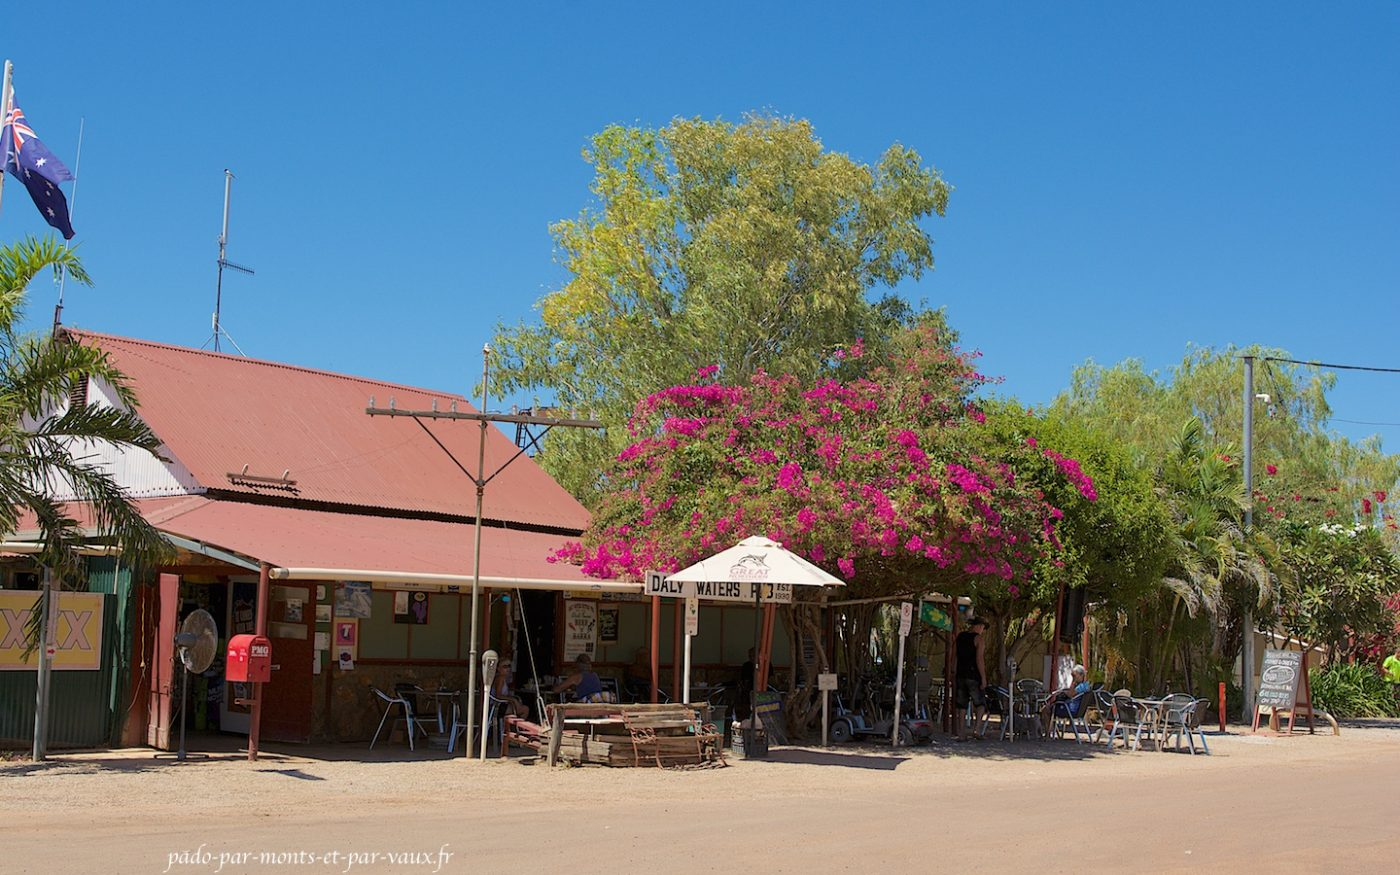 Daly Waters historic pub